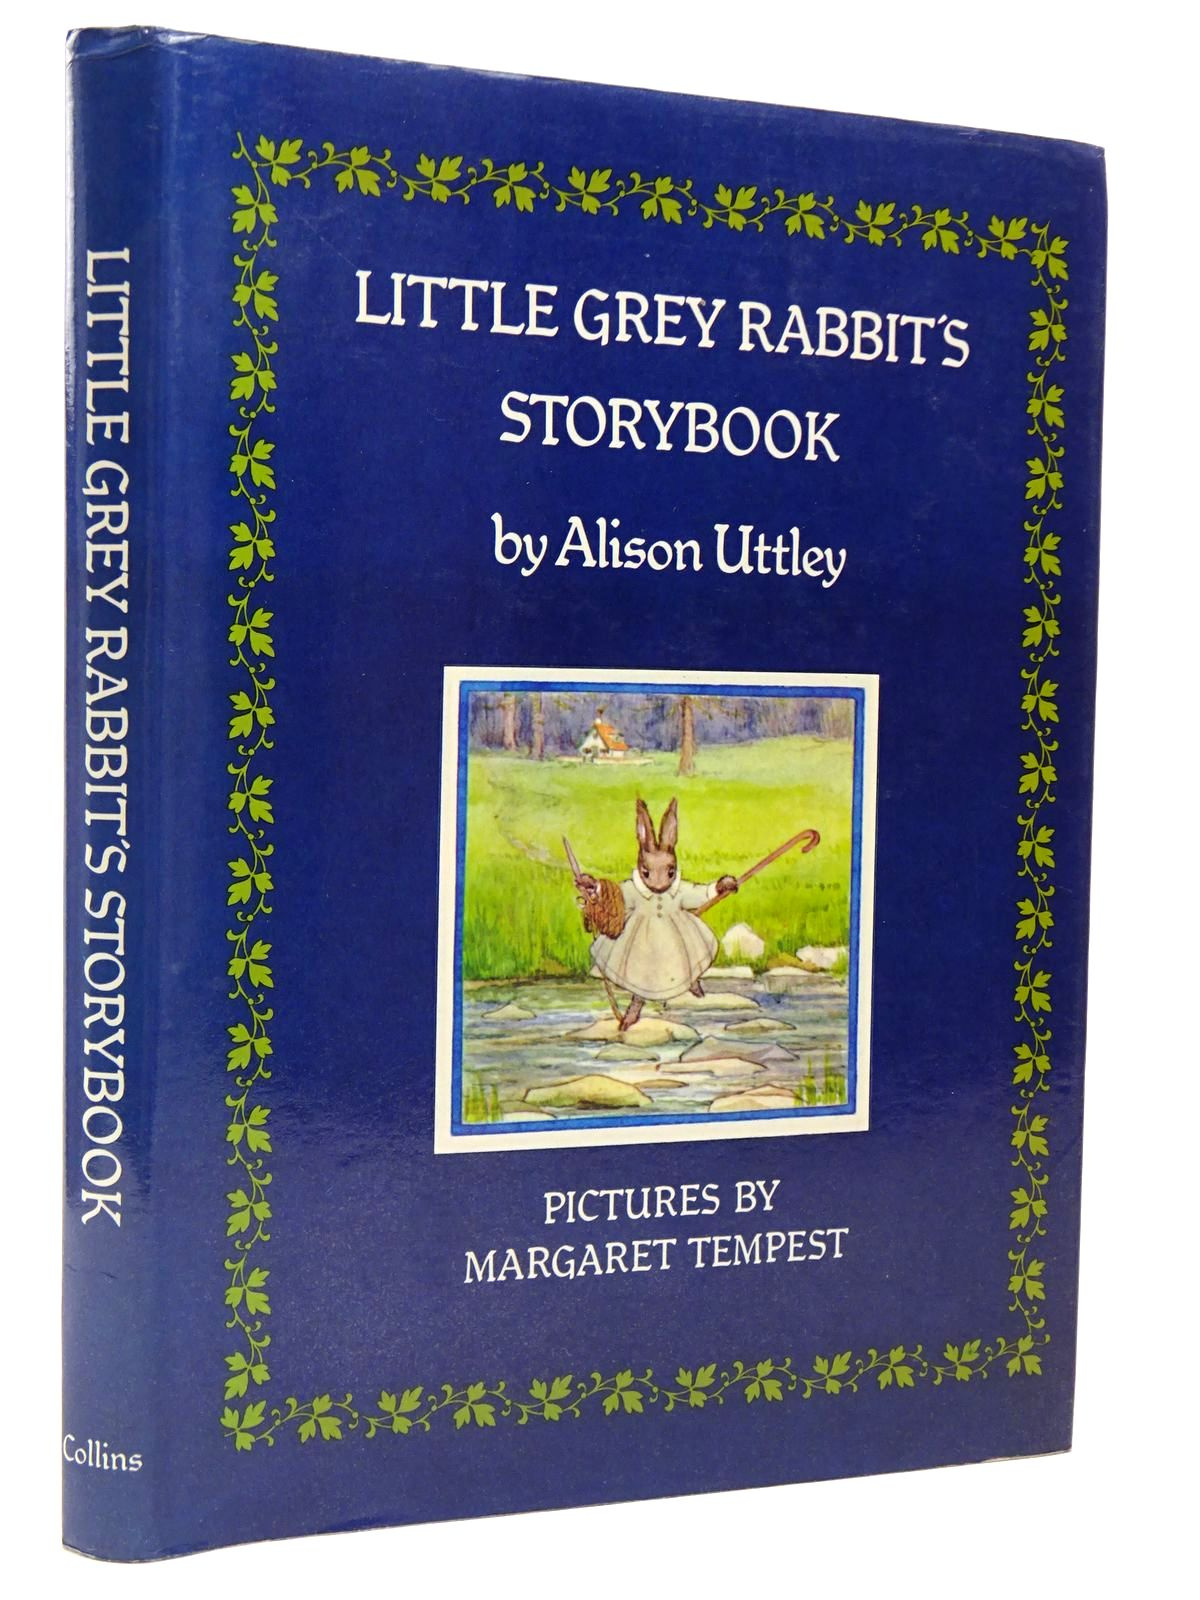 Photo of LITTLE GREY RABBIT'S STORYBOOK written by Uttley, Alison illustrated by Tempest, Margaret published by Collins (STOCK CODE: 2129795)  for sale by Stella & Rose's Books